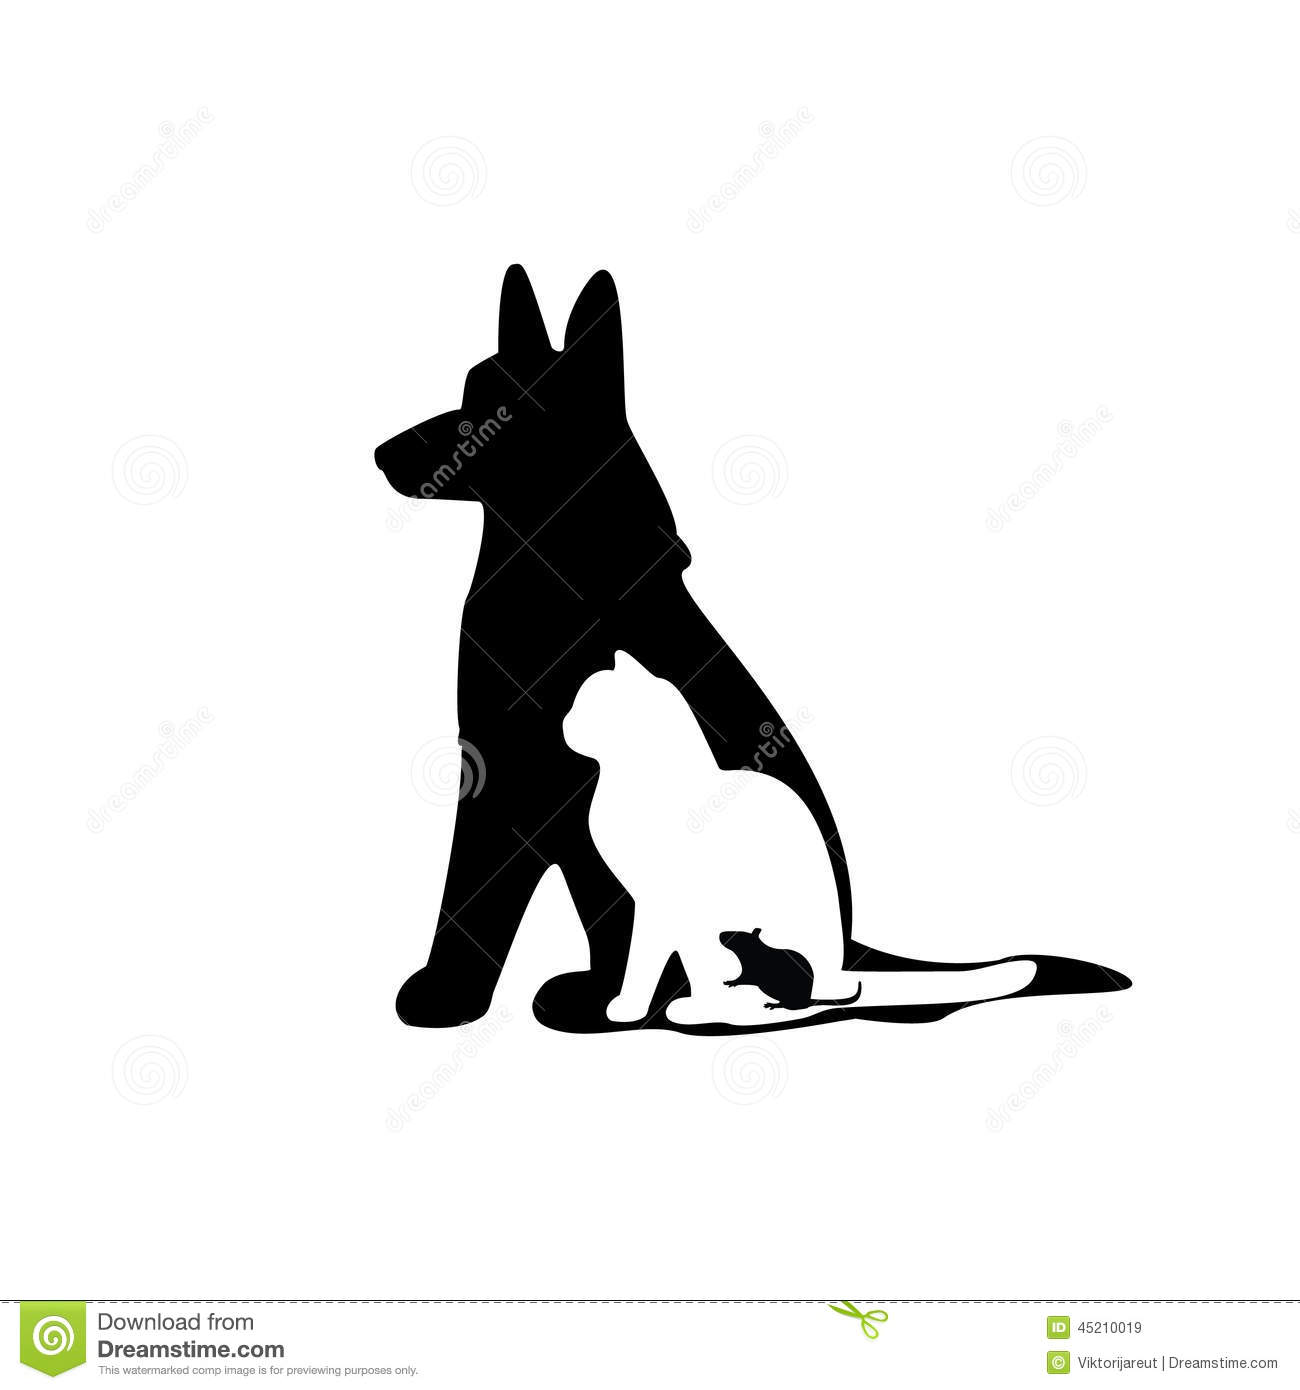 mouse cat dog silhouette stock illustration   image